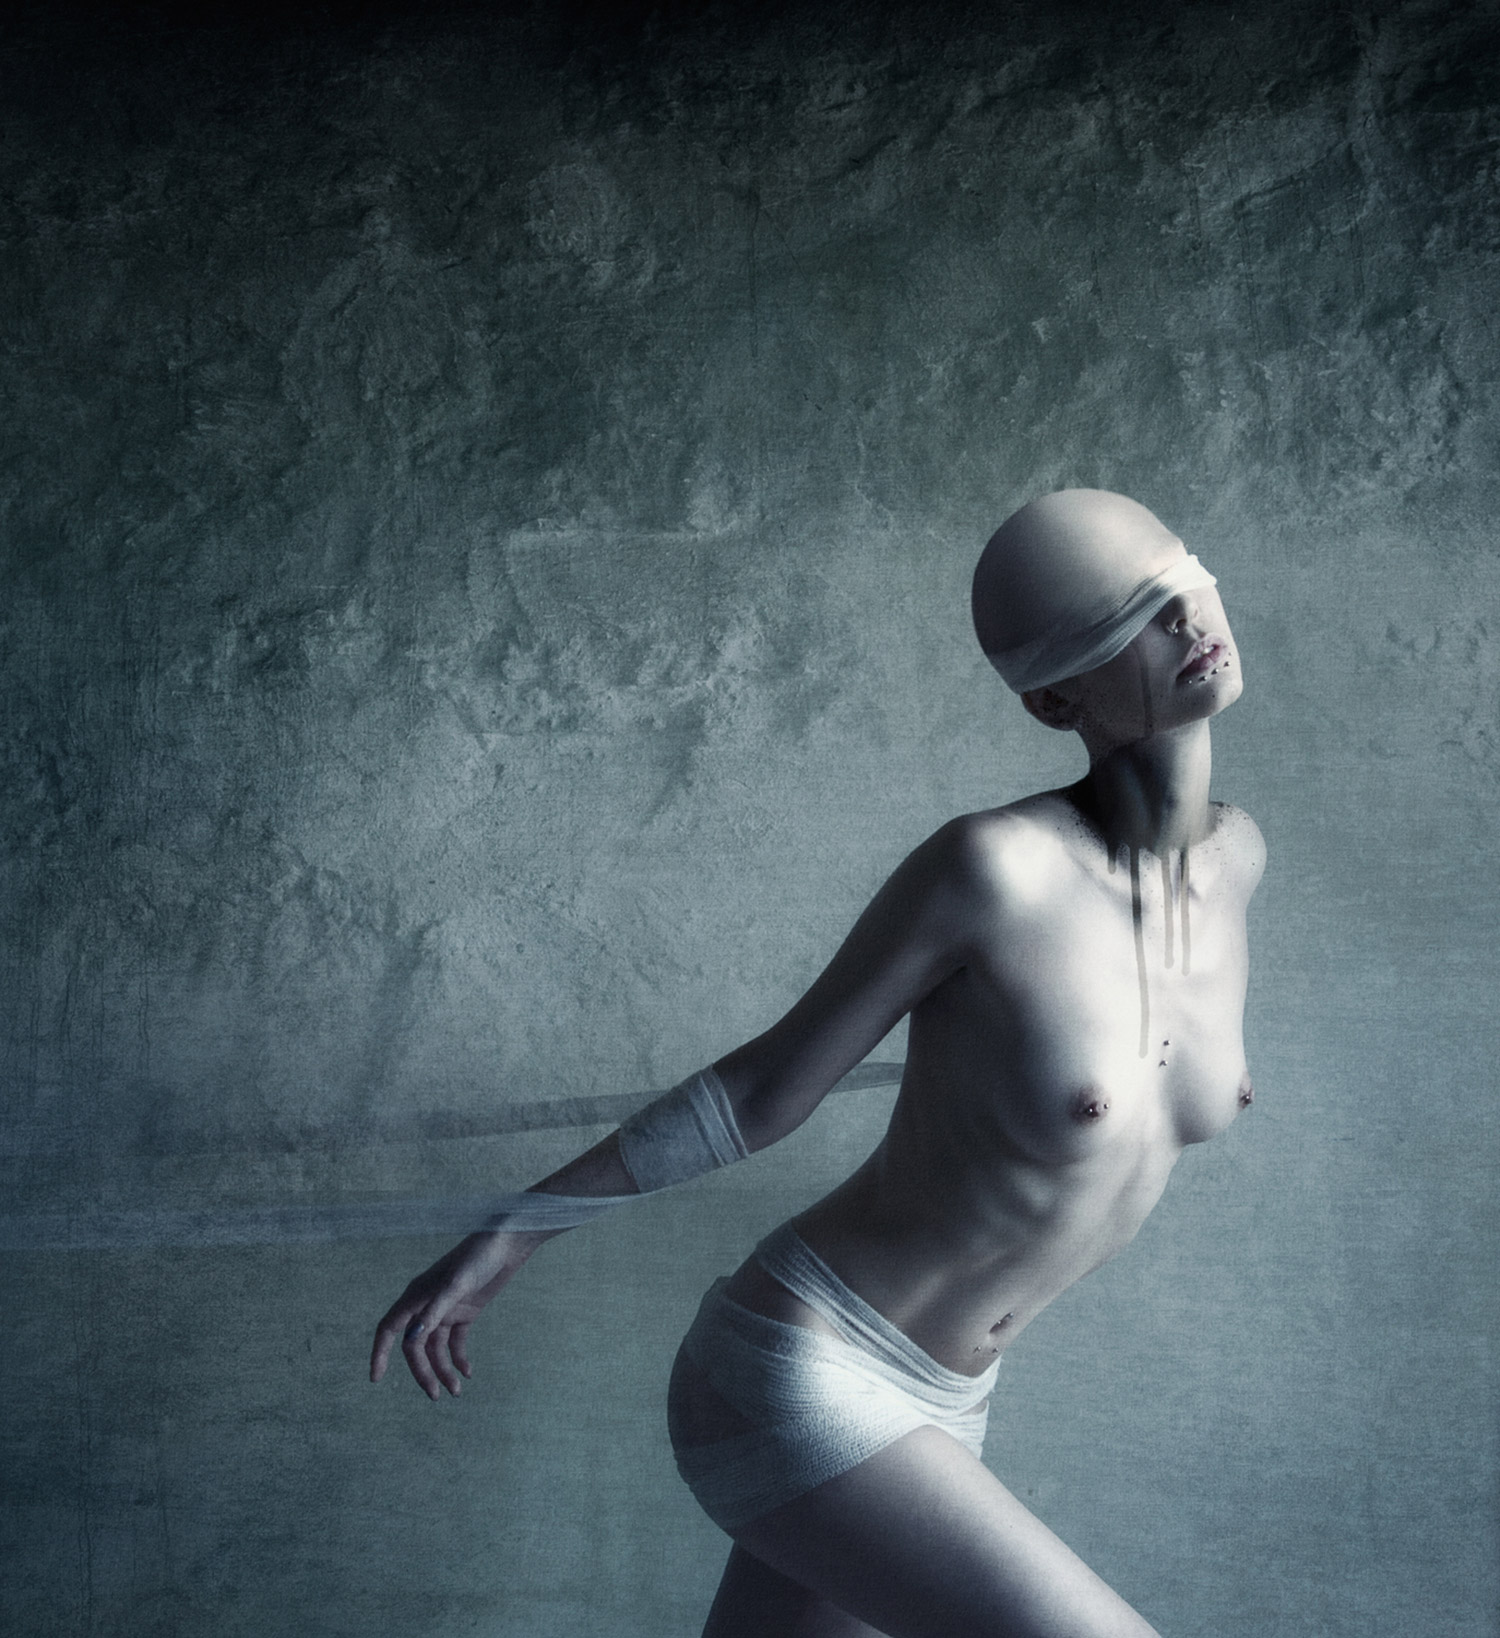 Daria Endresen - To Release with Audrey